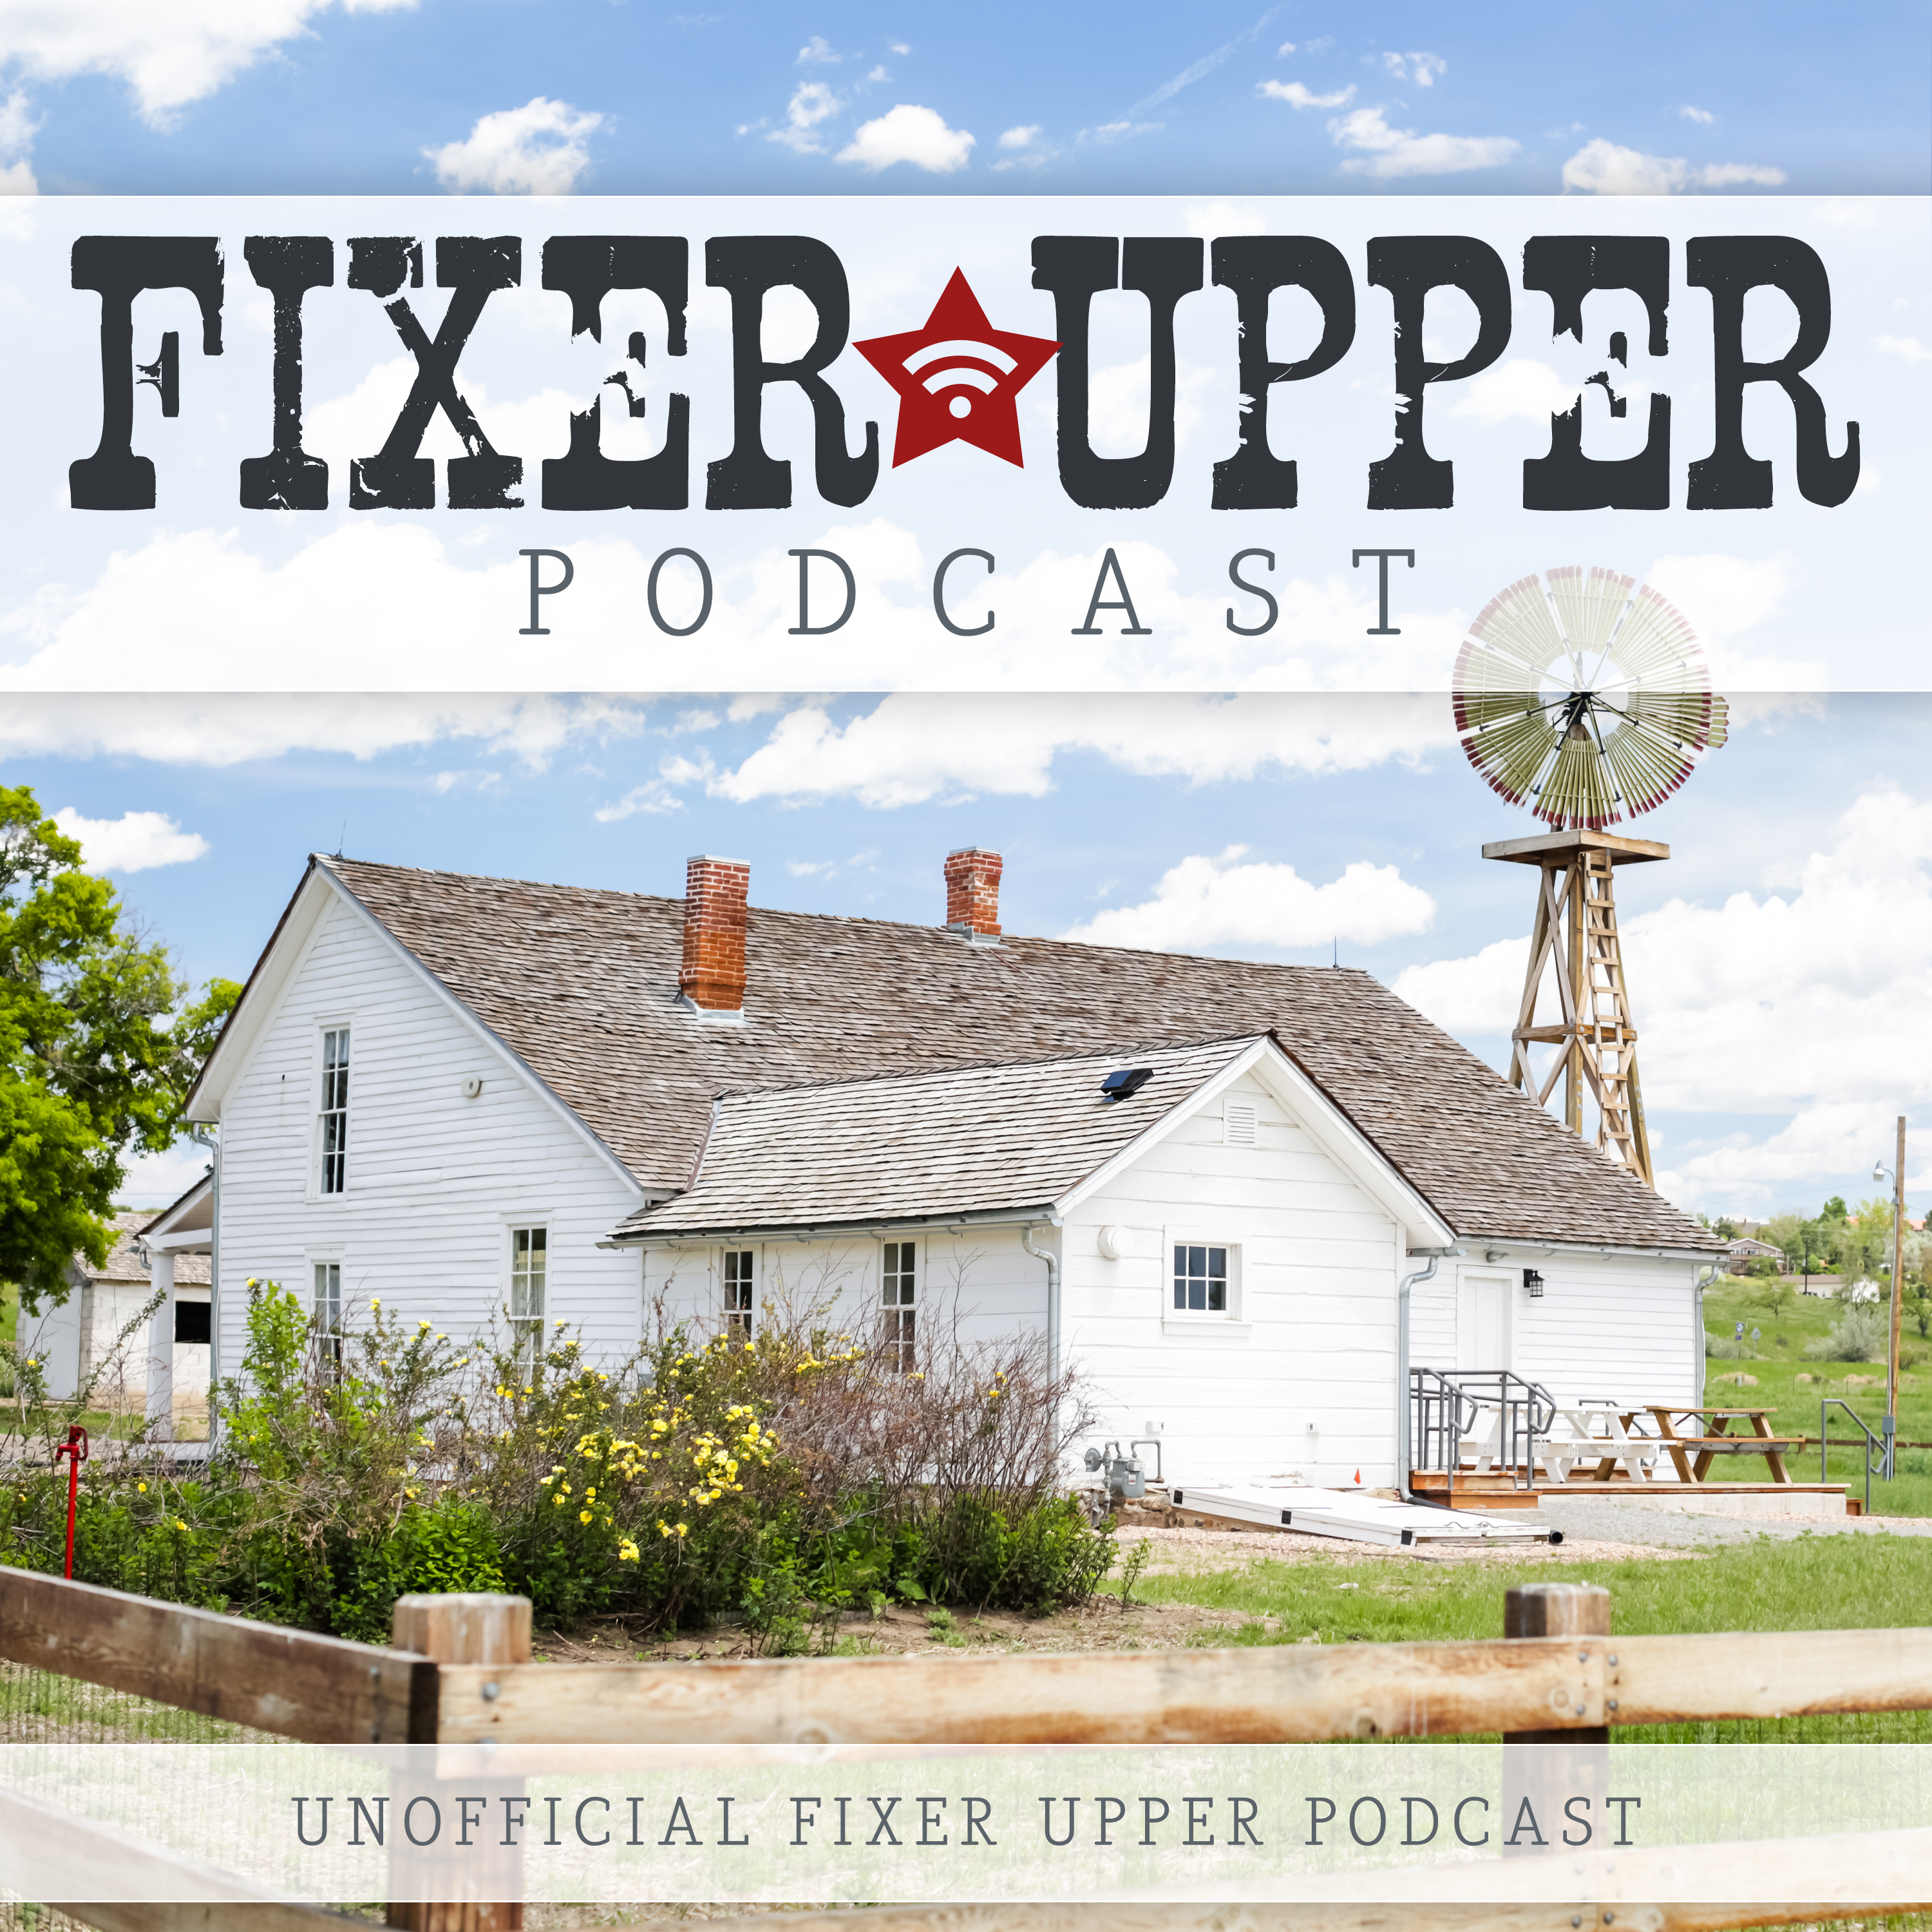 Fixer Upper Podcast Gary And Kathy Leland Talk About Joanna Chip Gaines Of The Hgtv Show We Decorate Diy Listen Via Scher Radio On Demand